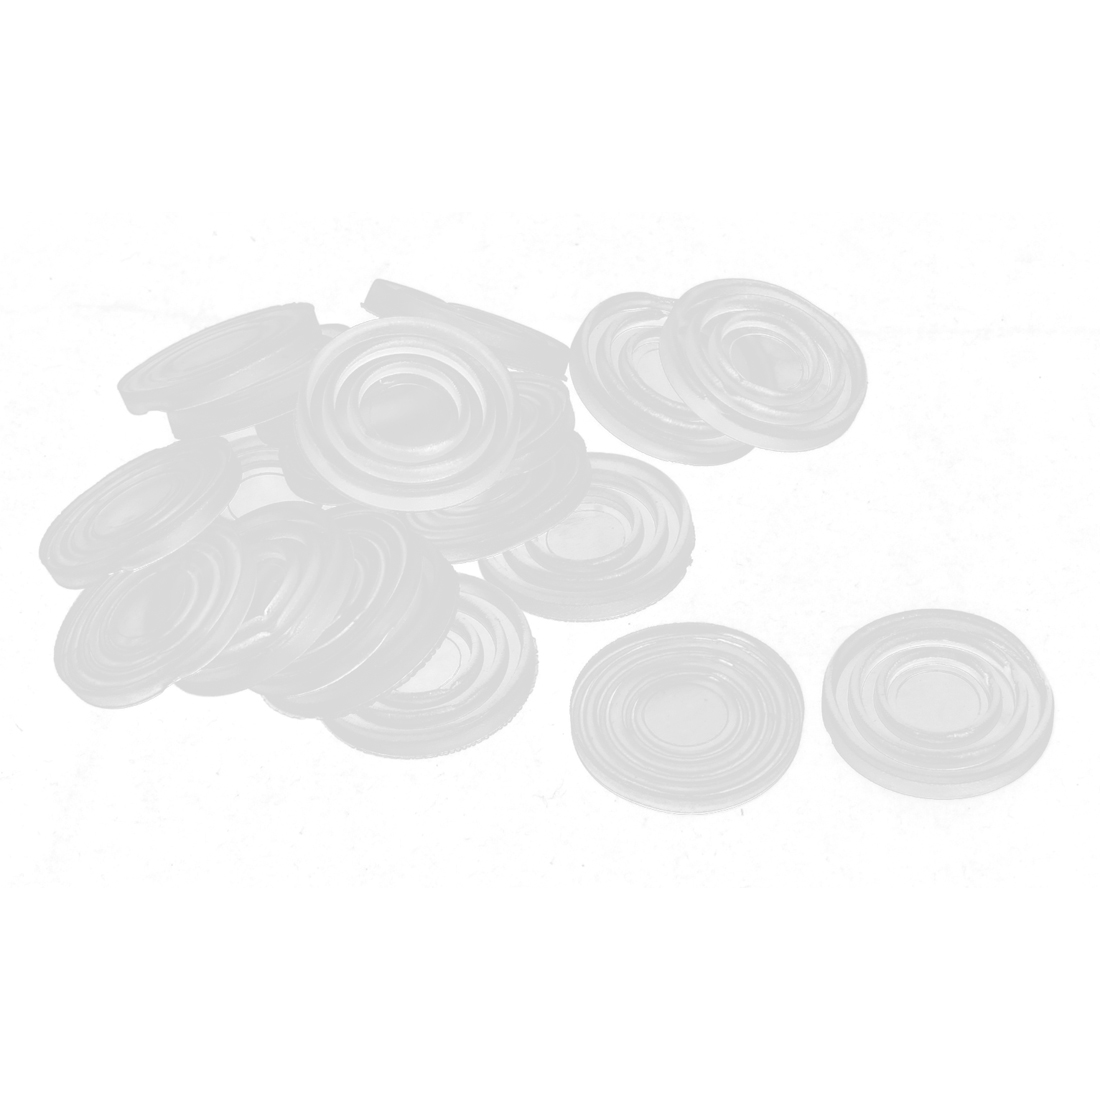 20pcs 24x3mm Round Soft Plastic Non-slip Glass Table Dash Mat Pad Cushion